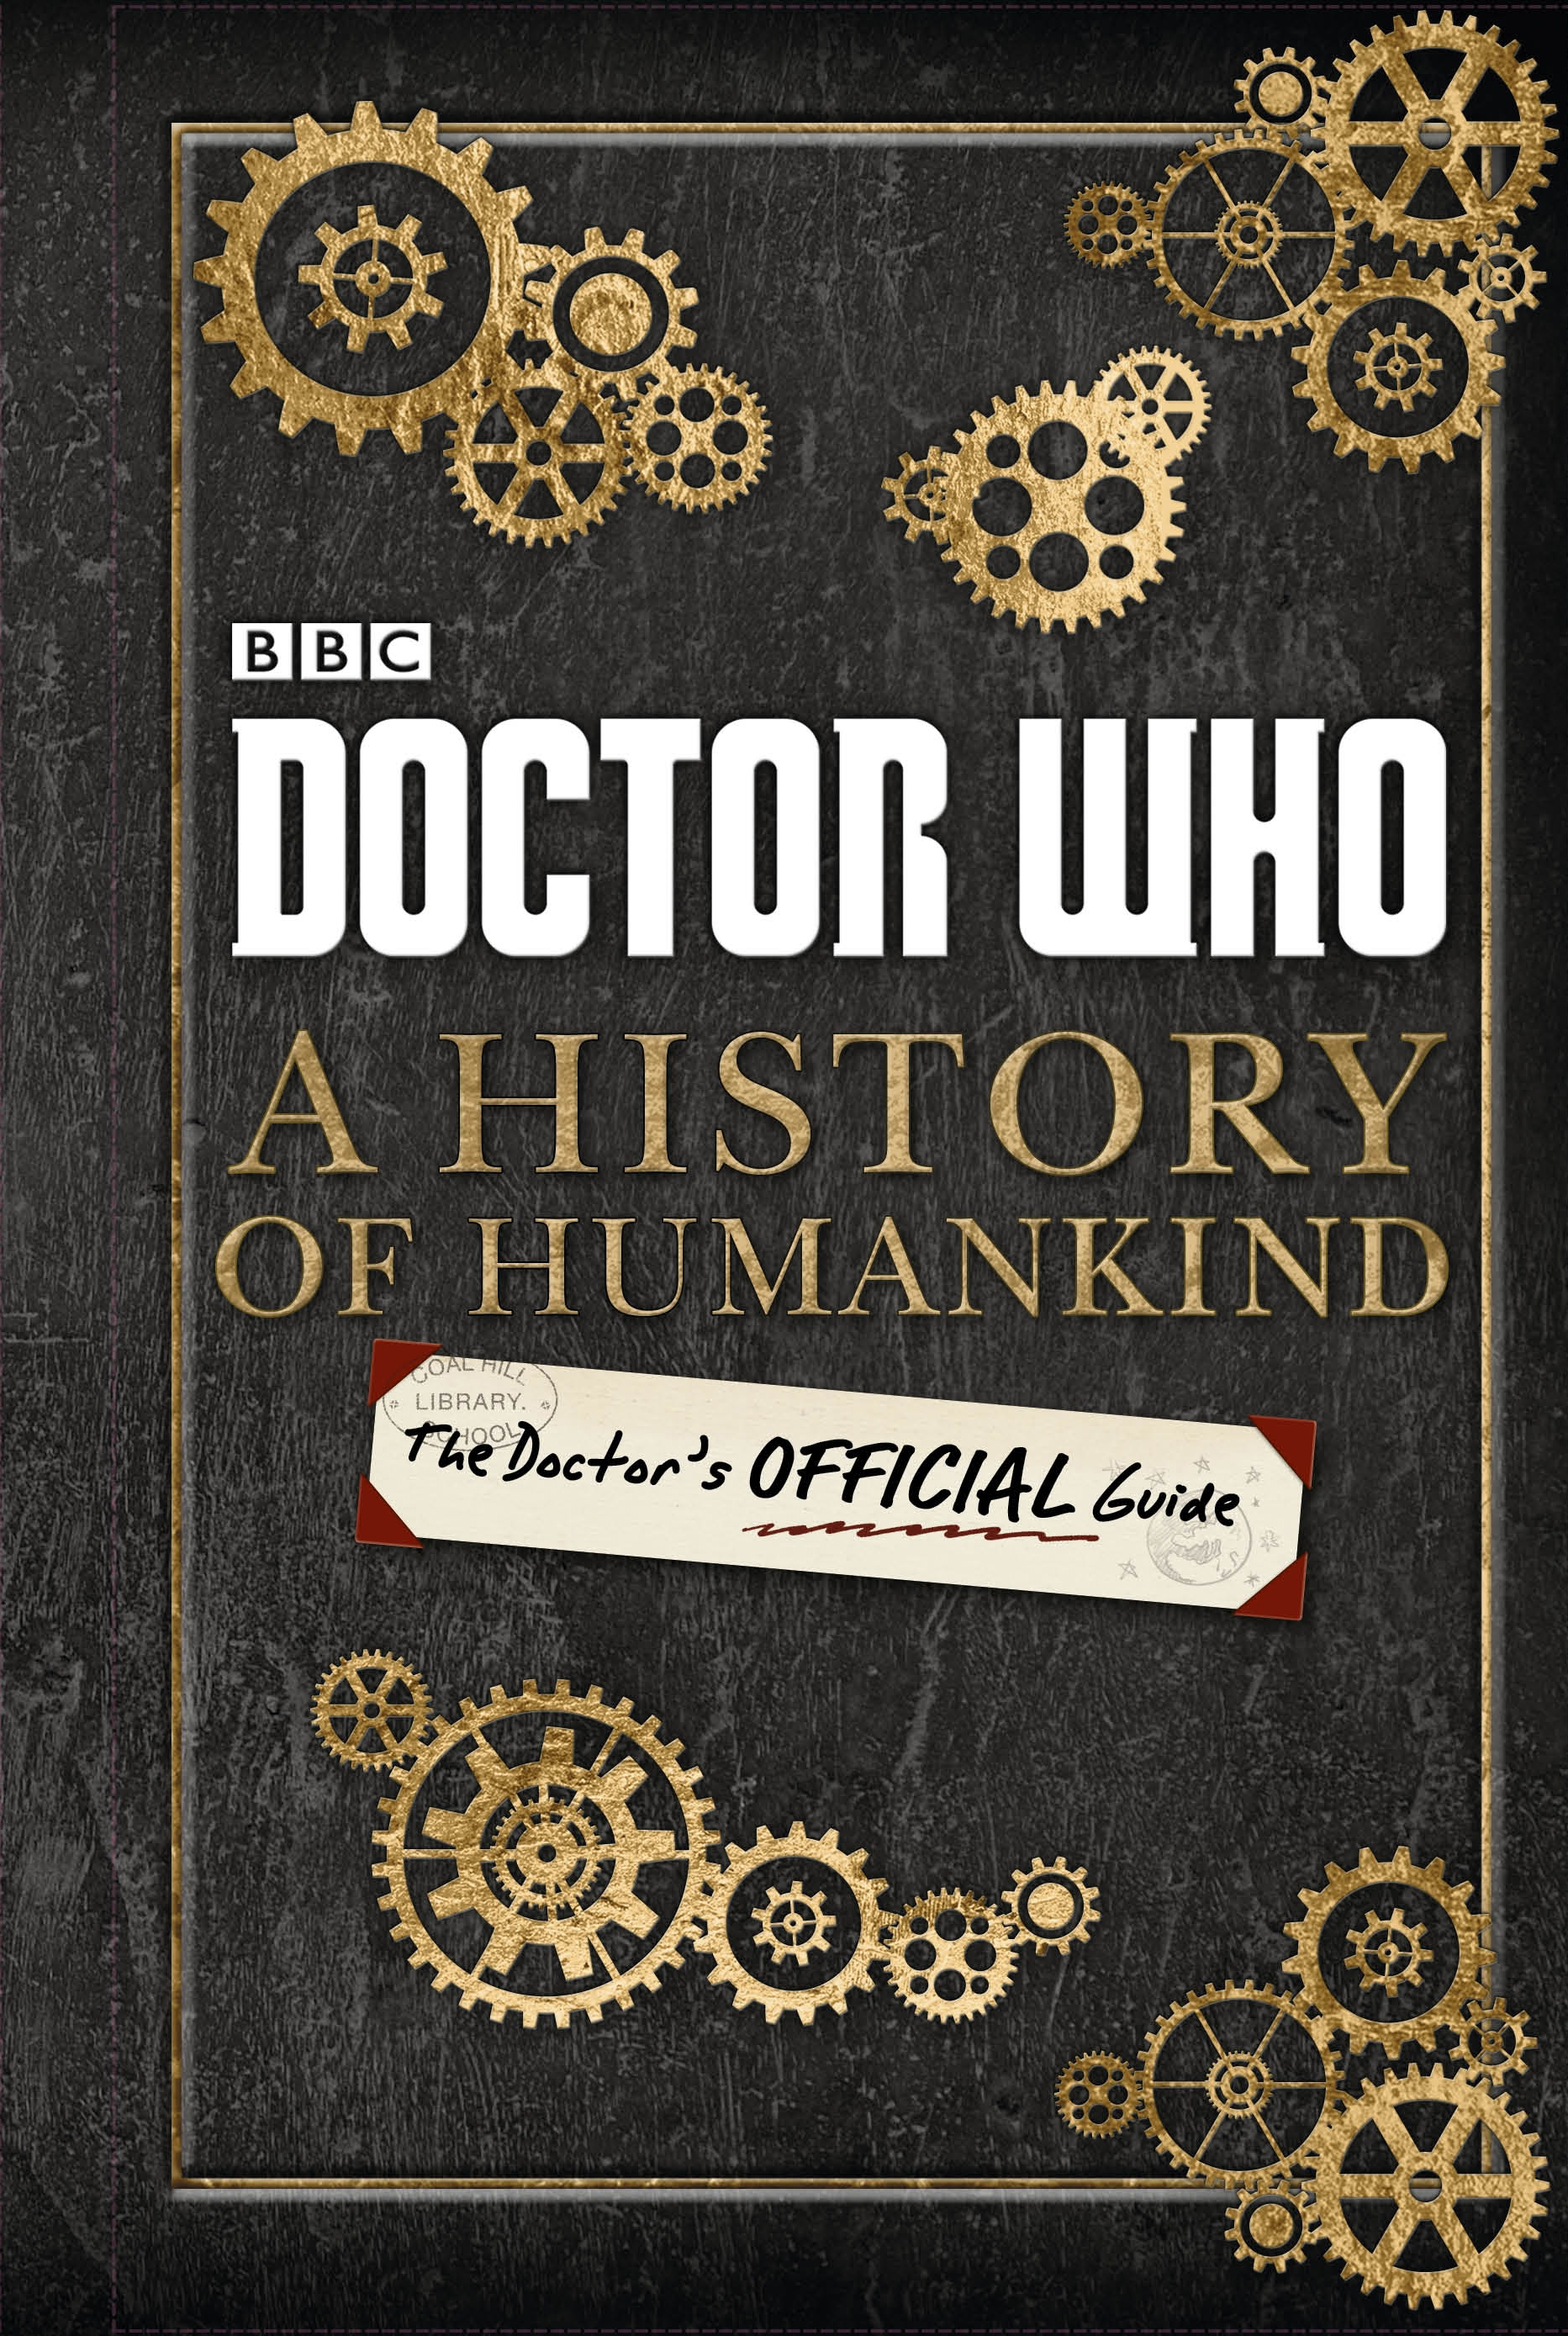 A History of Humankind (The Doctor's Official Guide) (Credit: BBC Childrens Books)